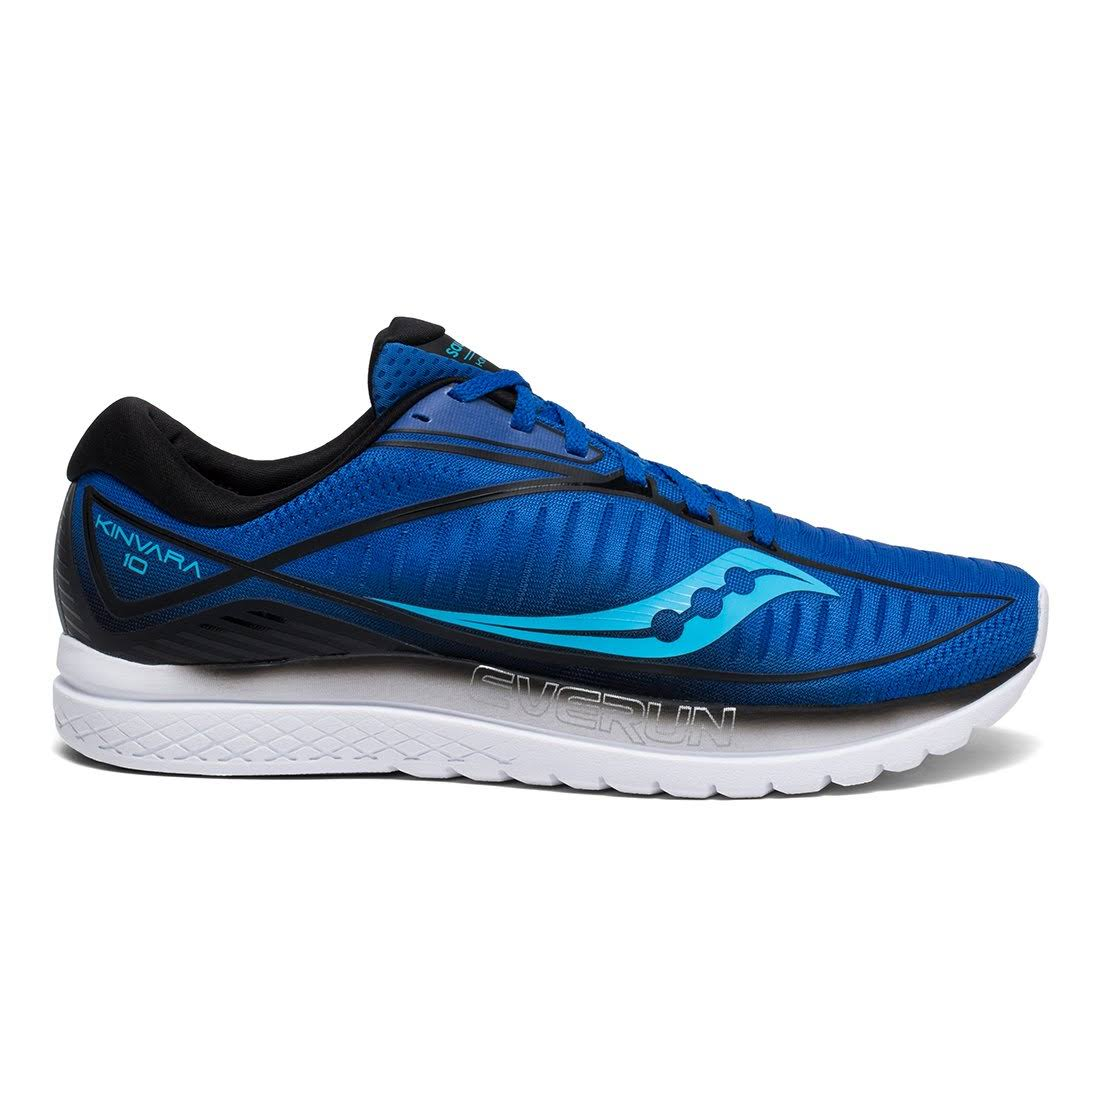 Saucony Kinvara 10 Men's - Blue/Black - 9.5